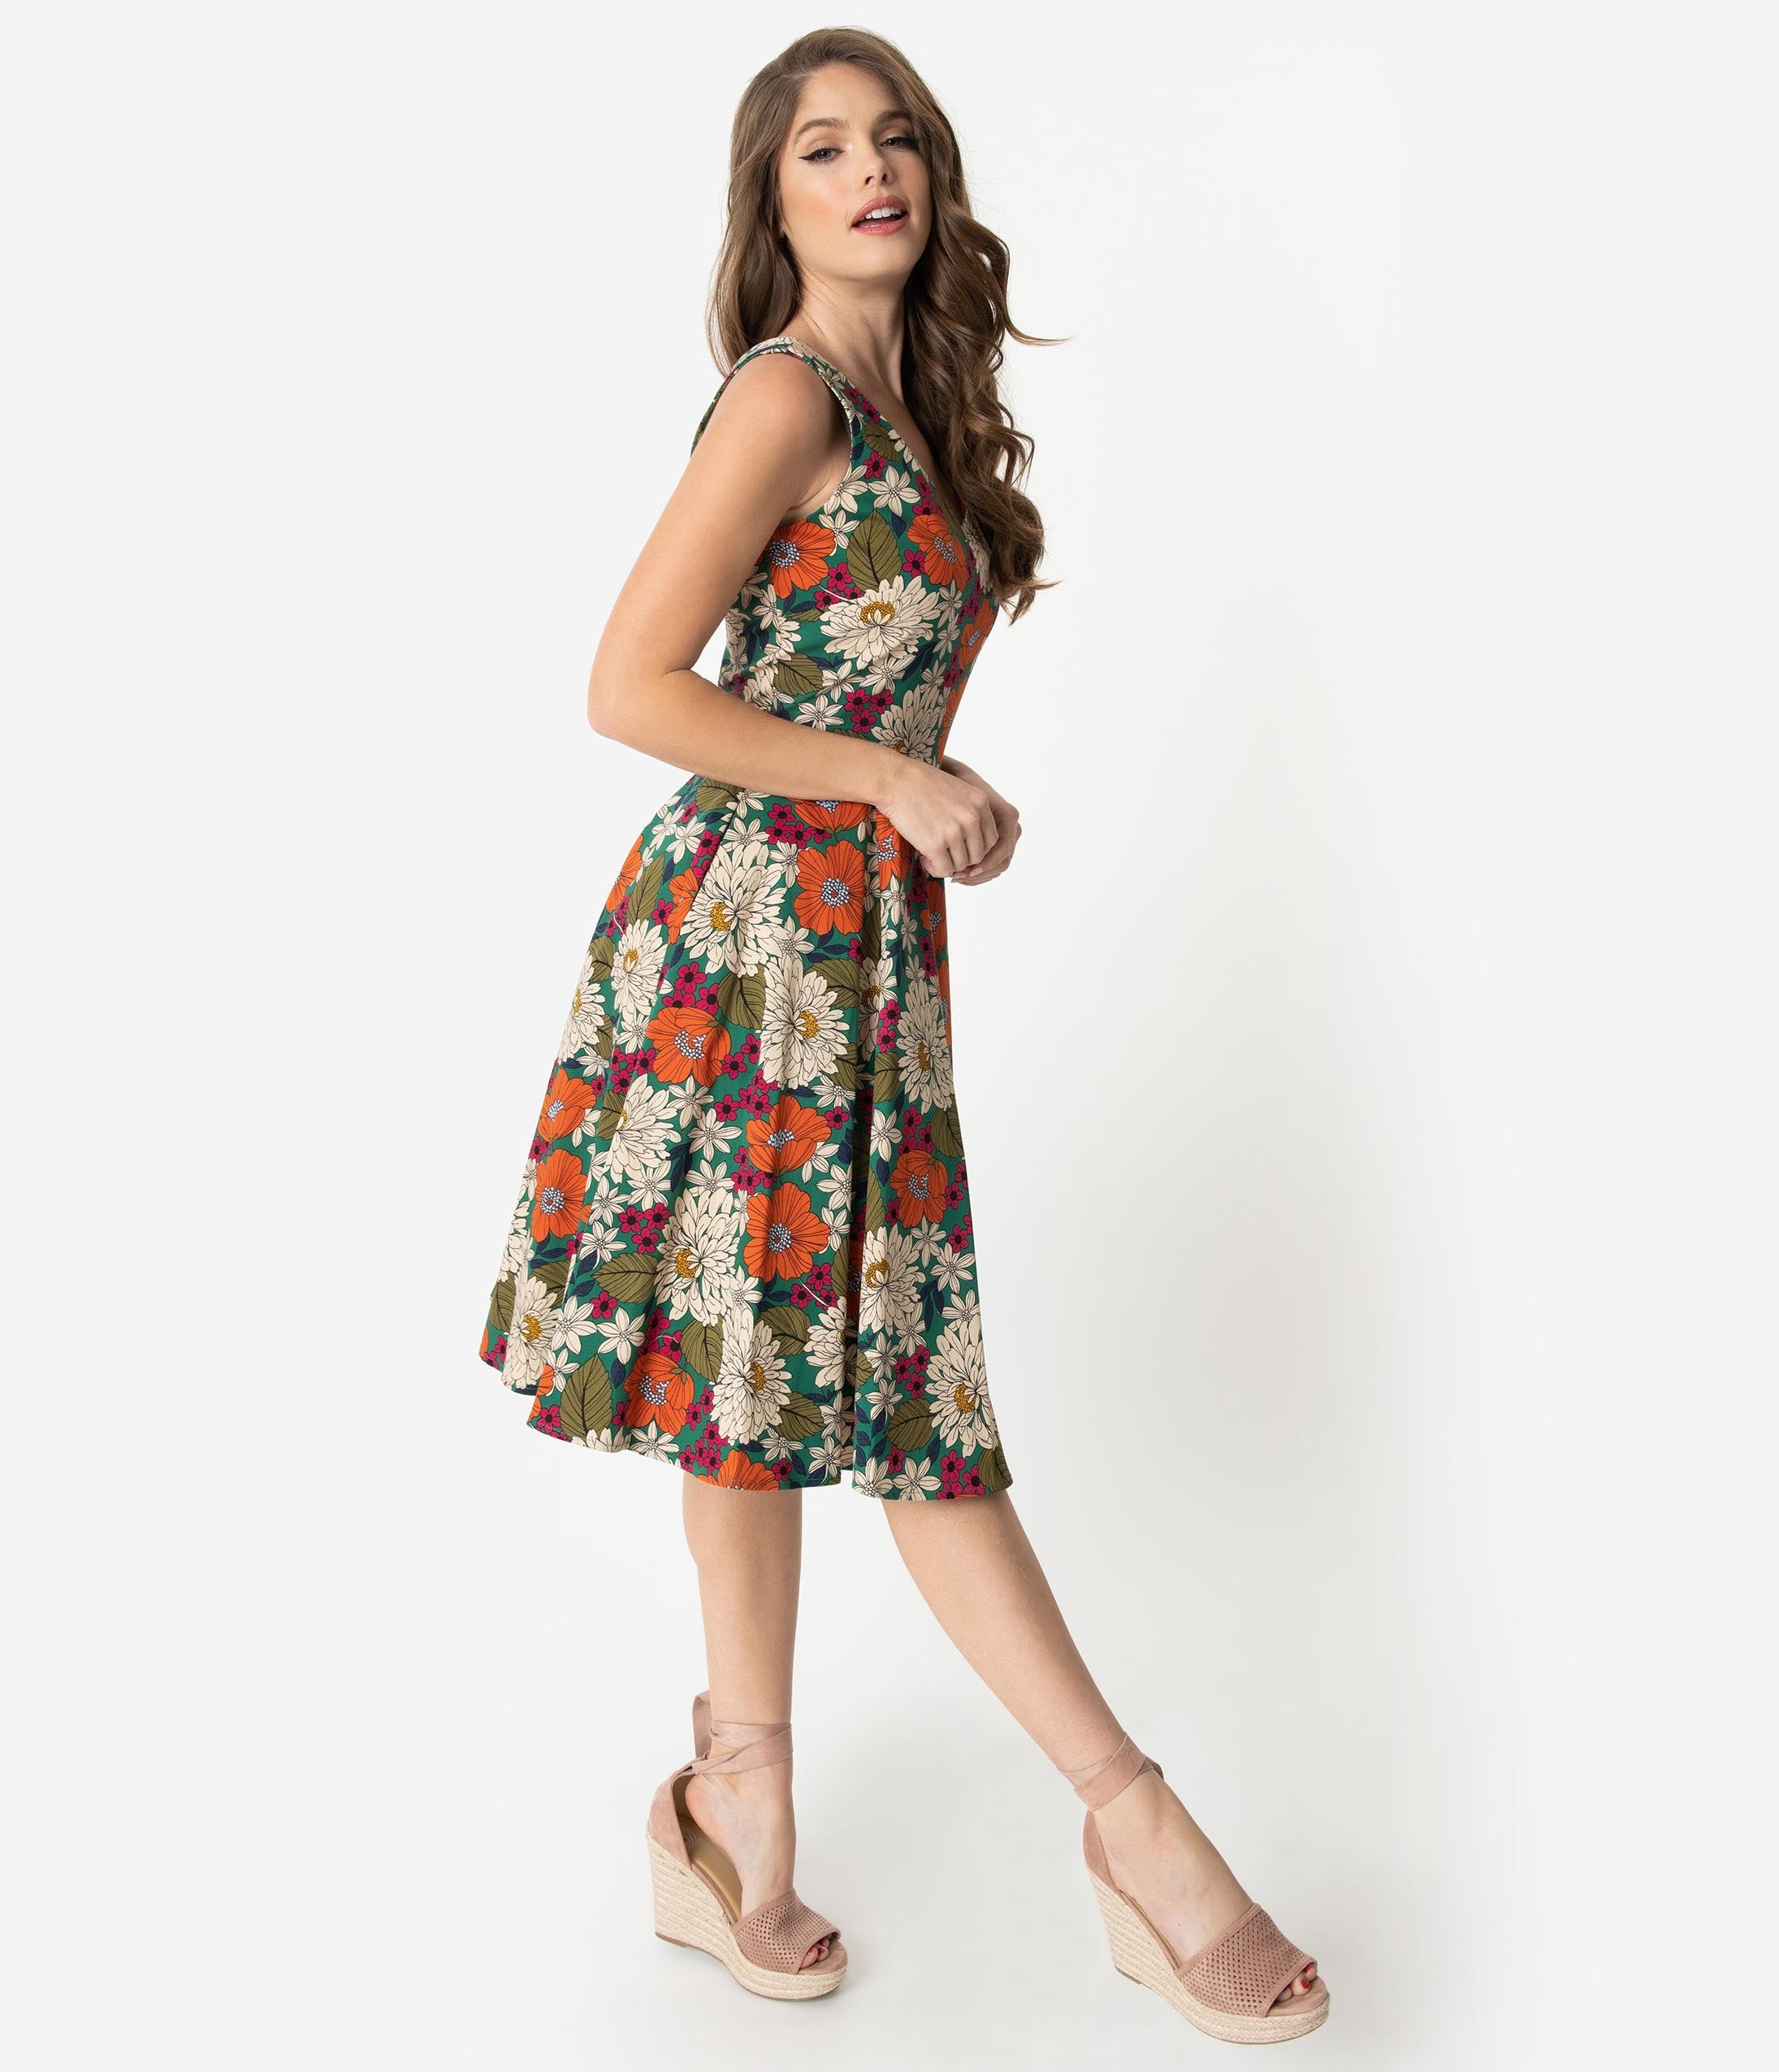 1970s Style Multicolor Floral Print Sleeveless Swing Dress 2d82163ff7e2